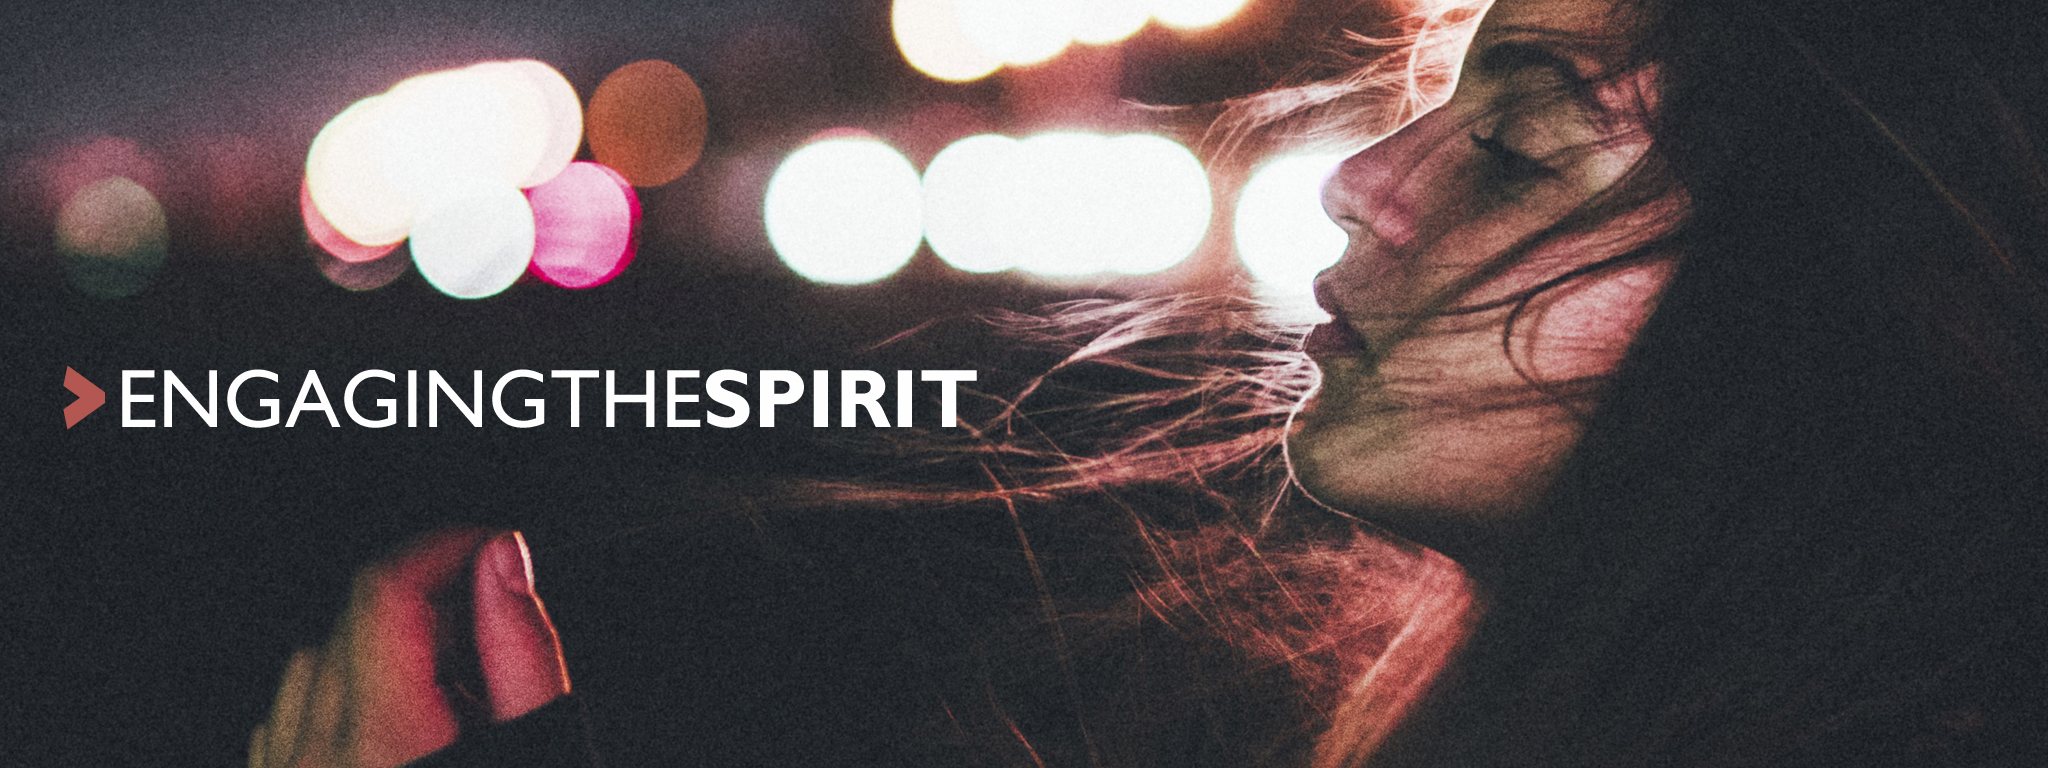 Engaging the Spirit